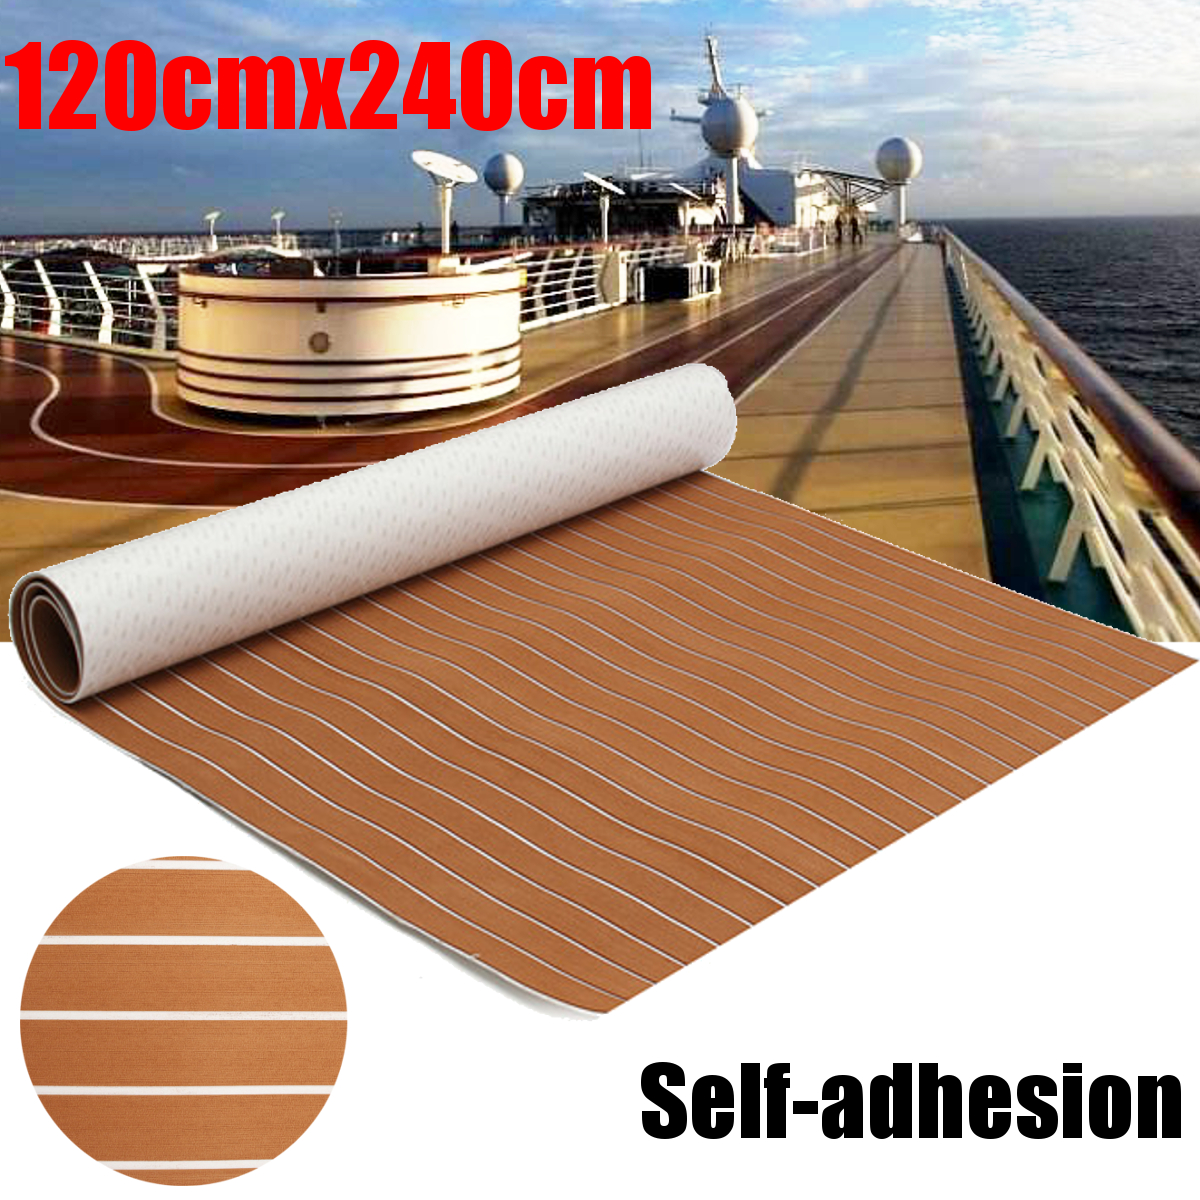 120x240cm Self Adhesive EVA Foam Teak Sheet Teak Flooring Teak Boat Decking Marine Car Yacht Floor Mat Synthetic Teak Pad teak house комод maori